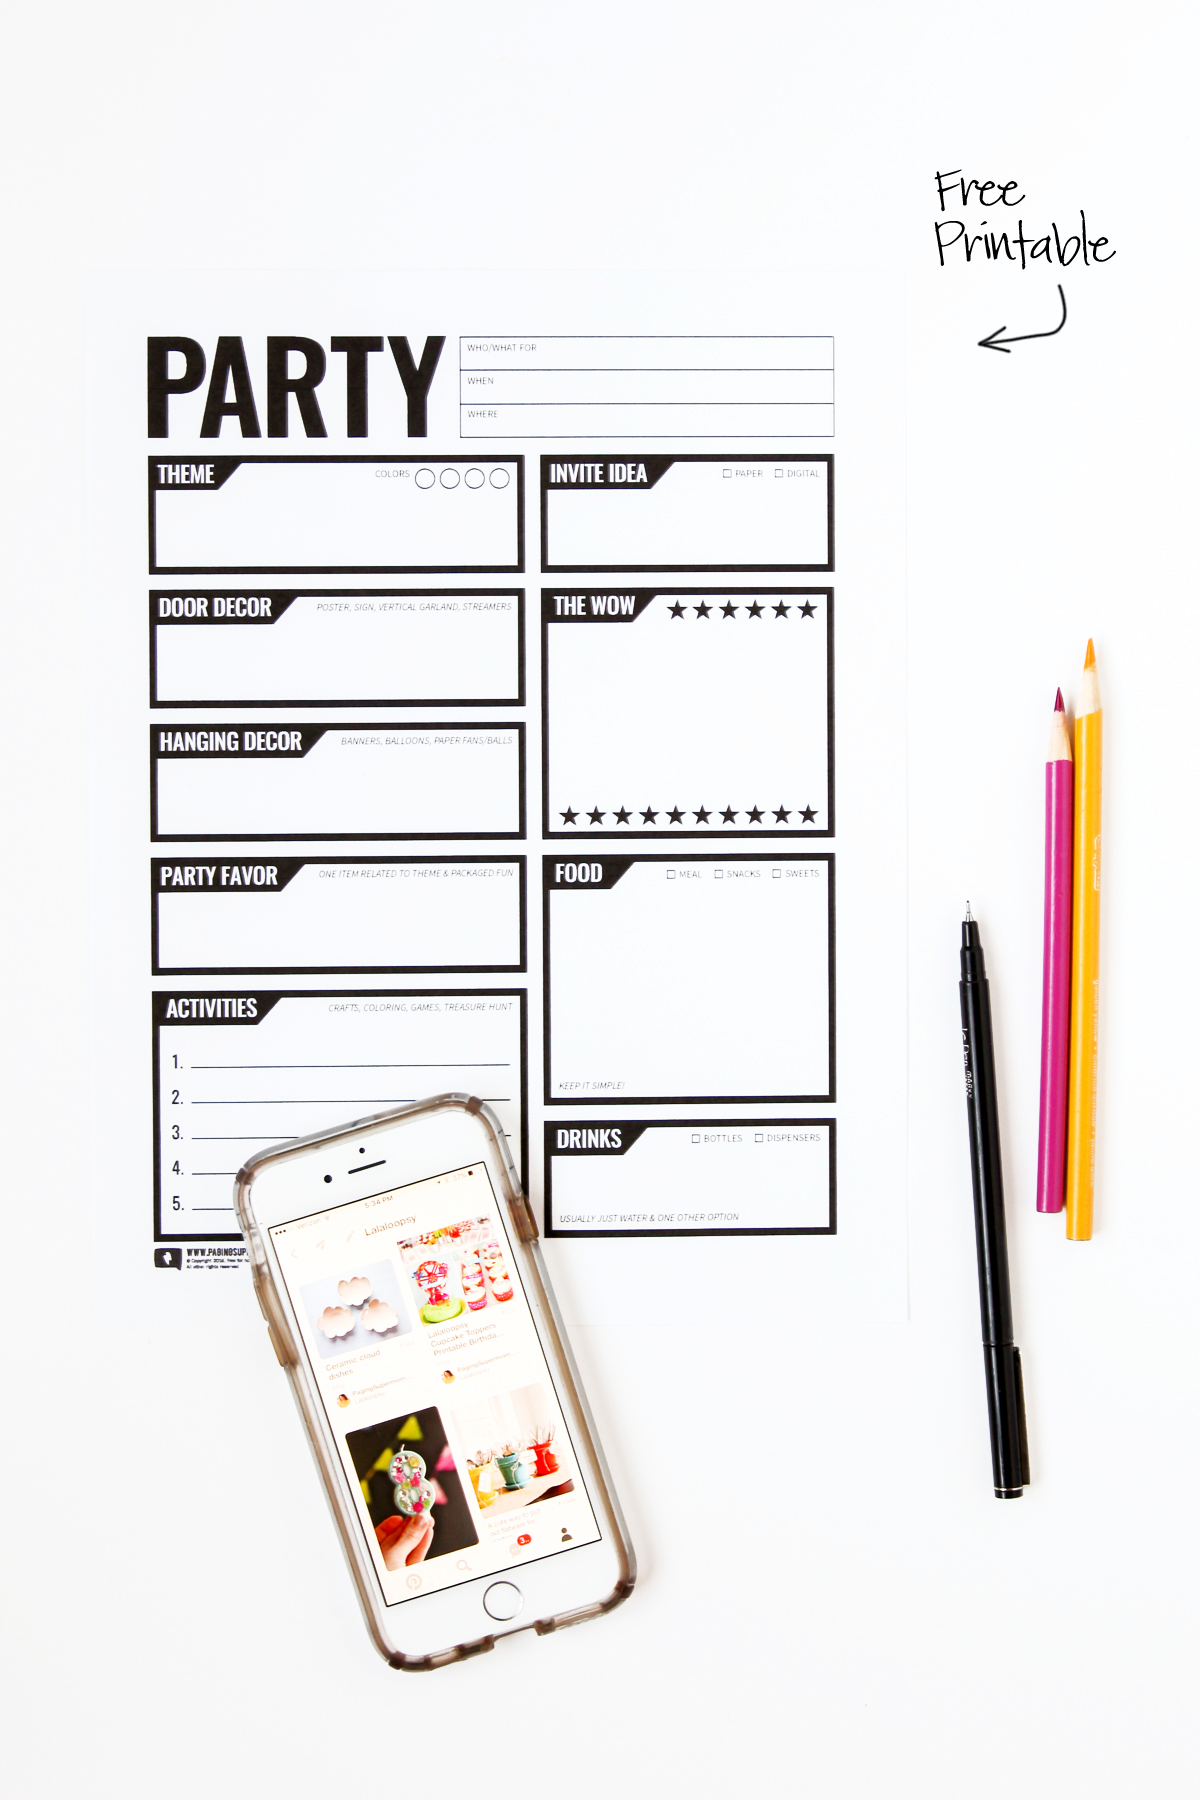 great ideas for simplifying how to plan a kid's birthday party via @PagingSupermom